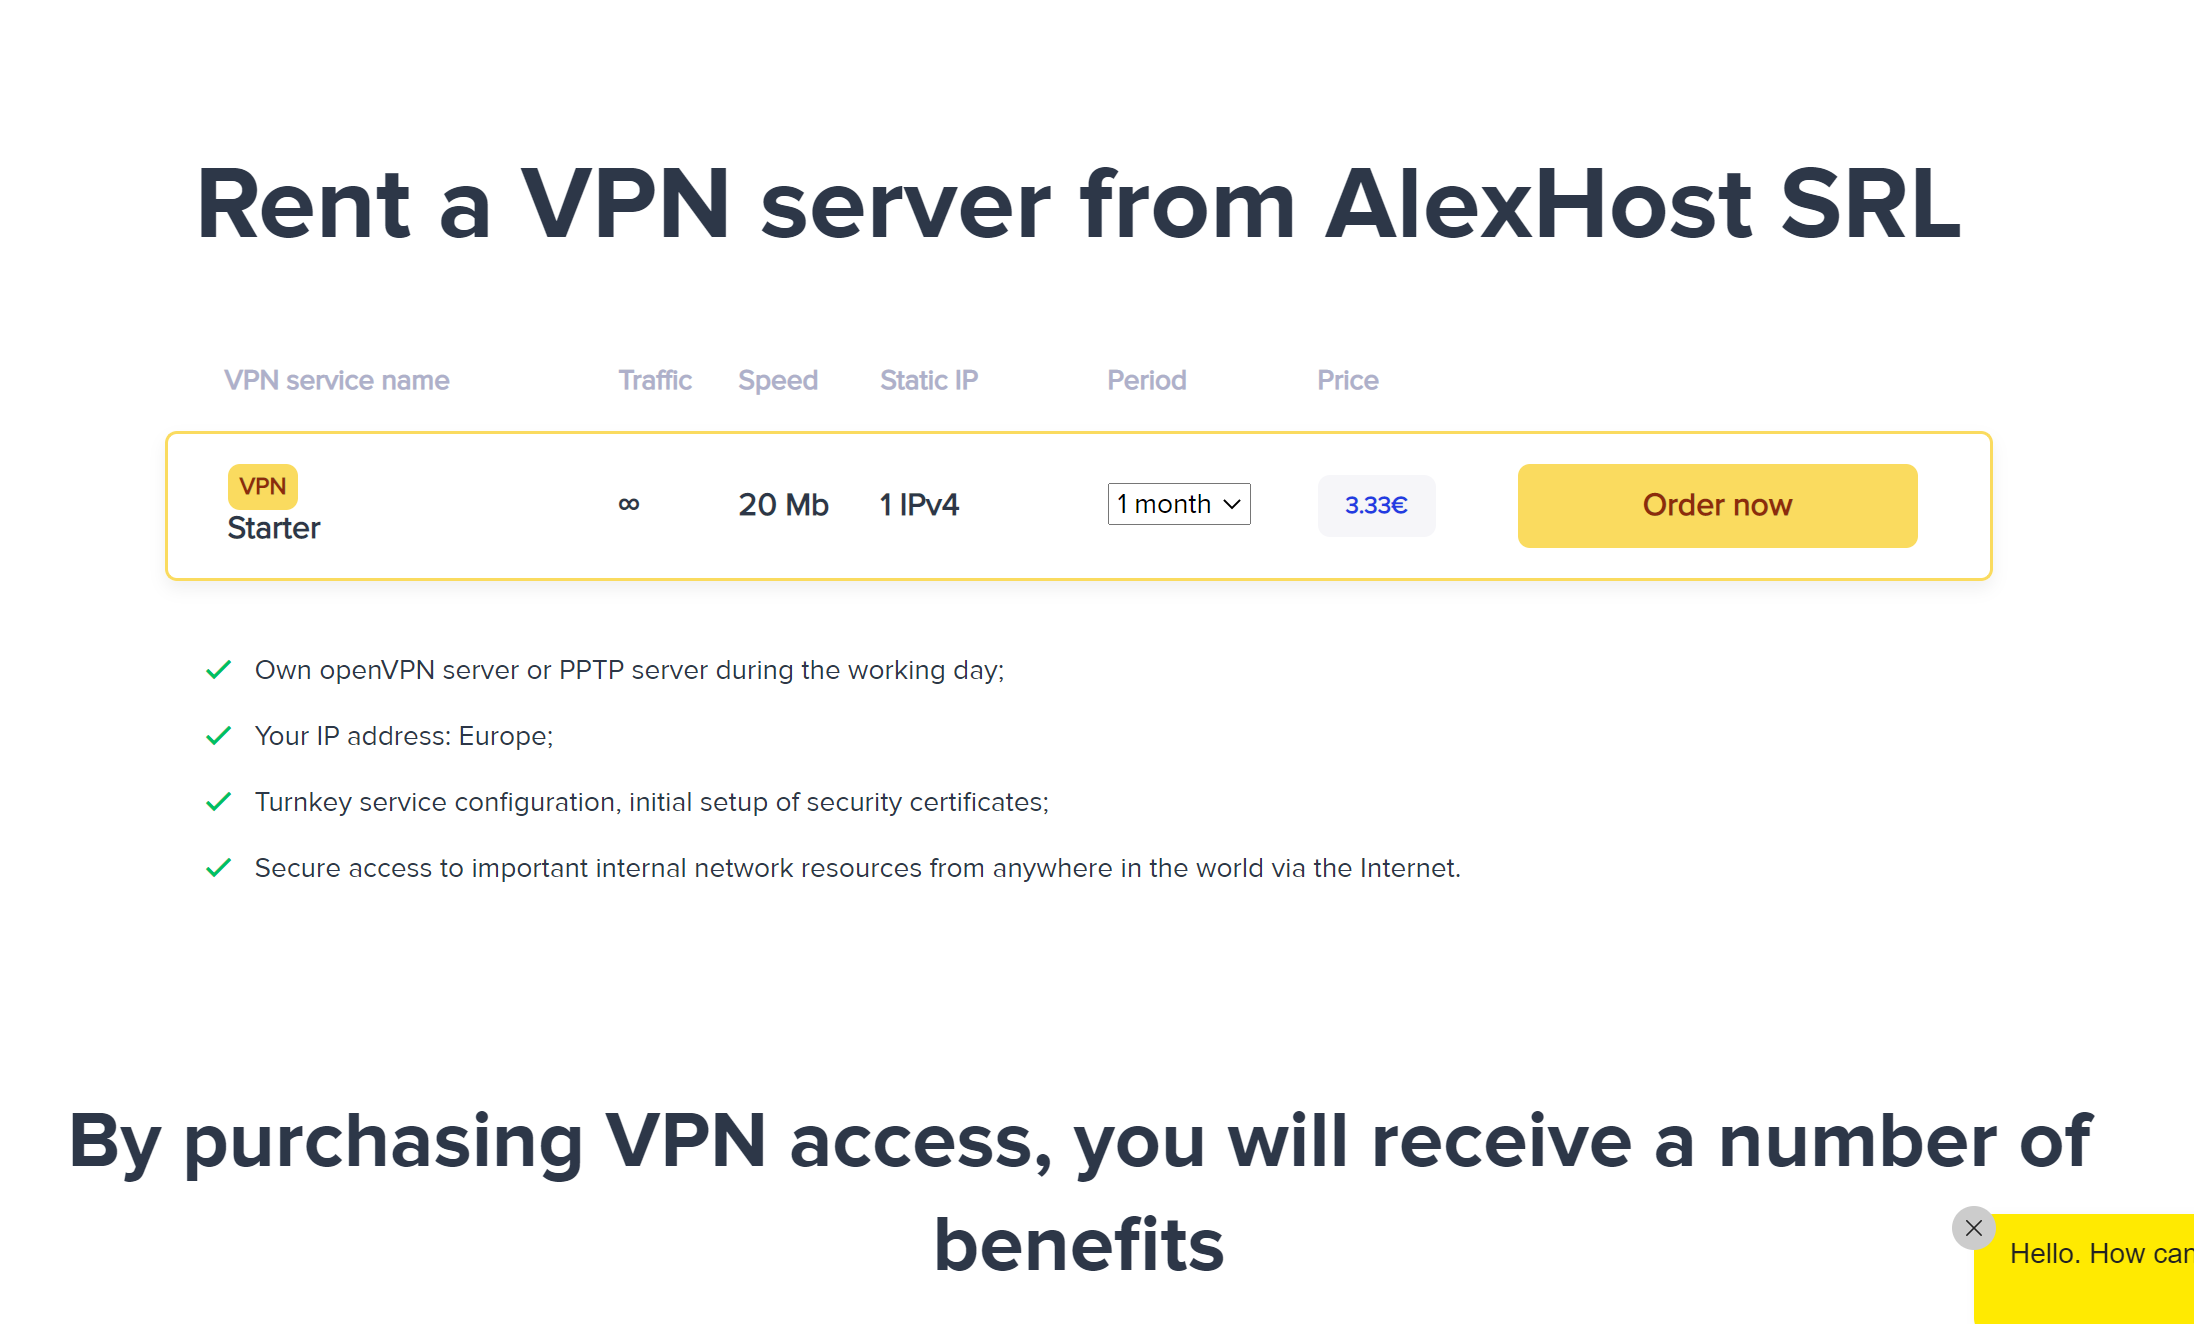 AlexHost VPN service review